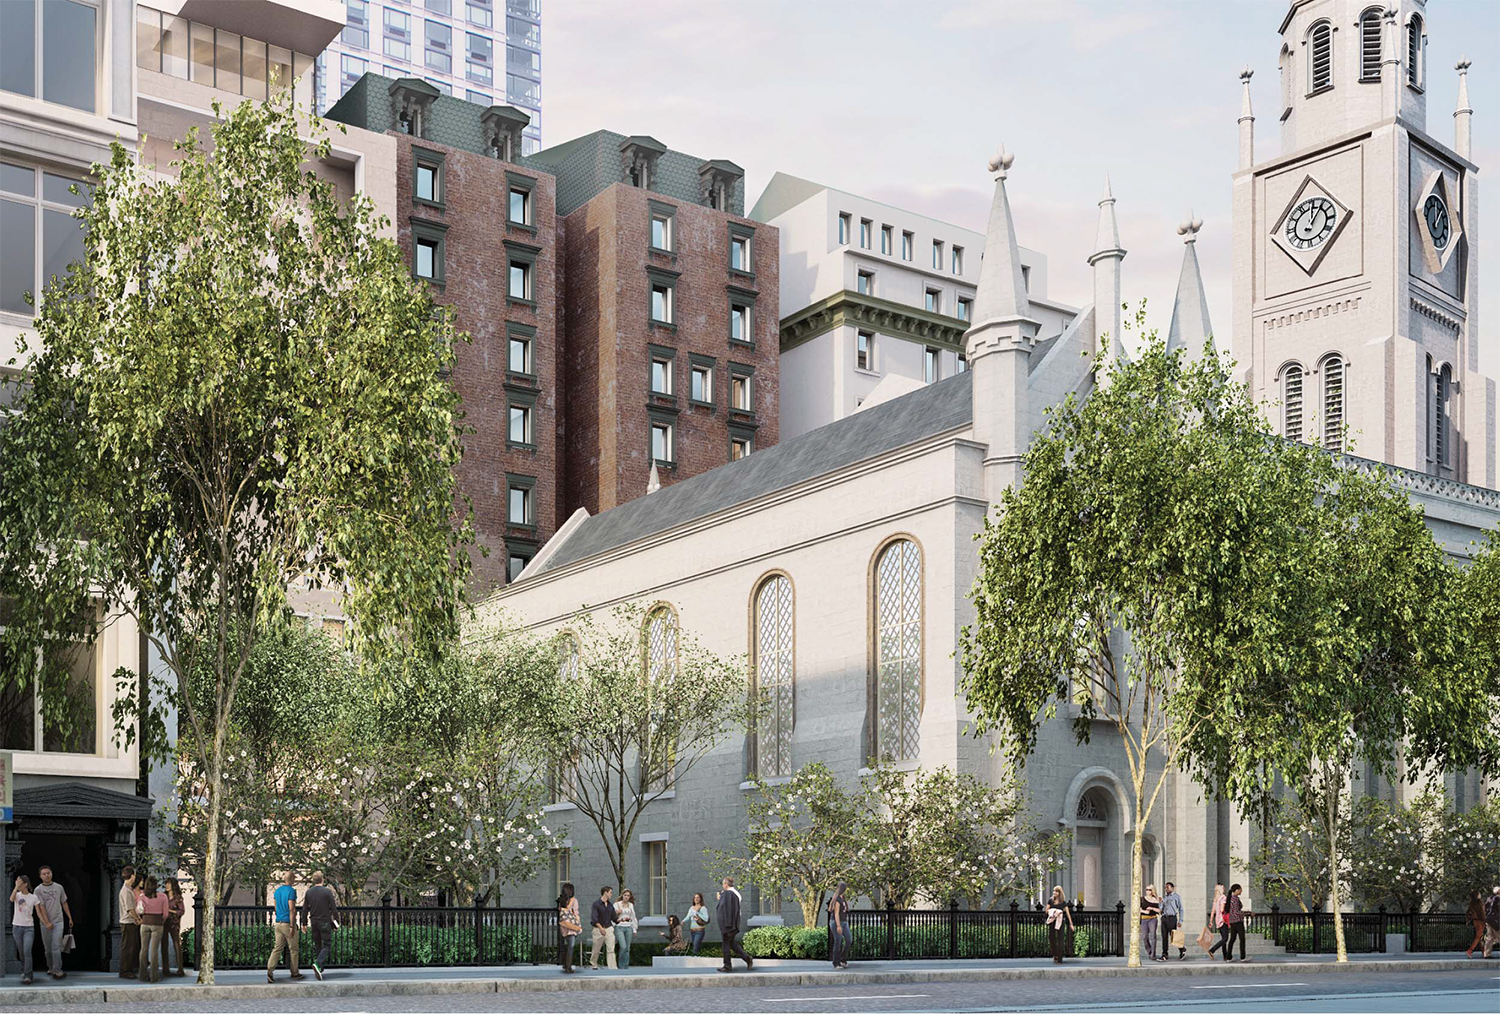 Rendering of the proposed new western facade for the church.